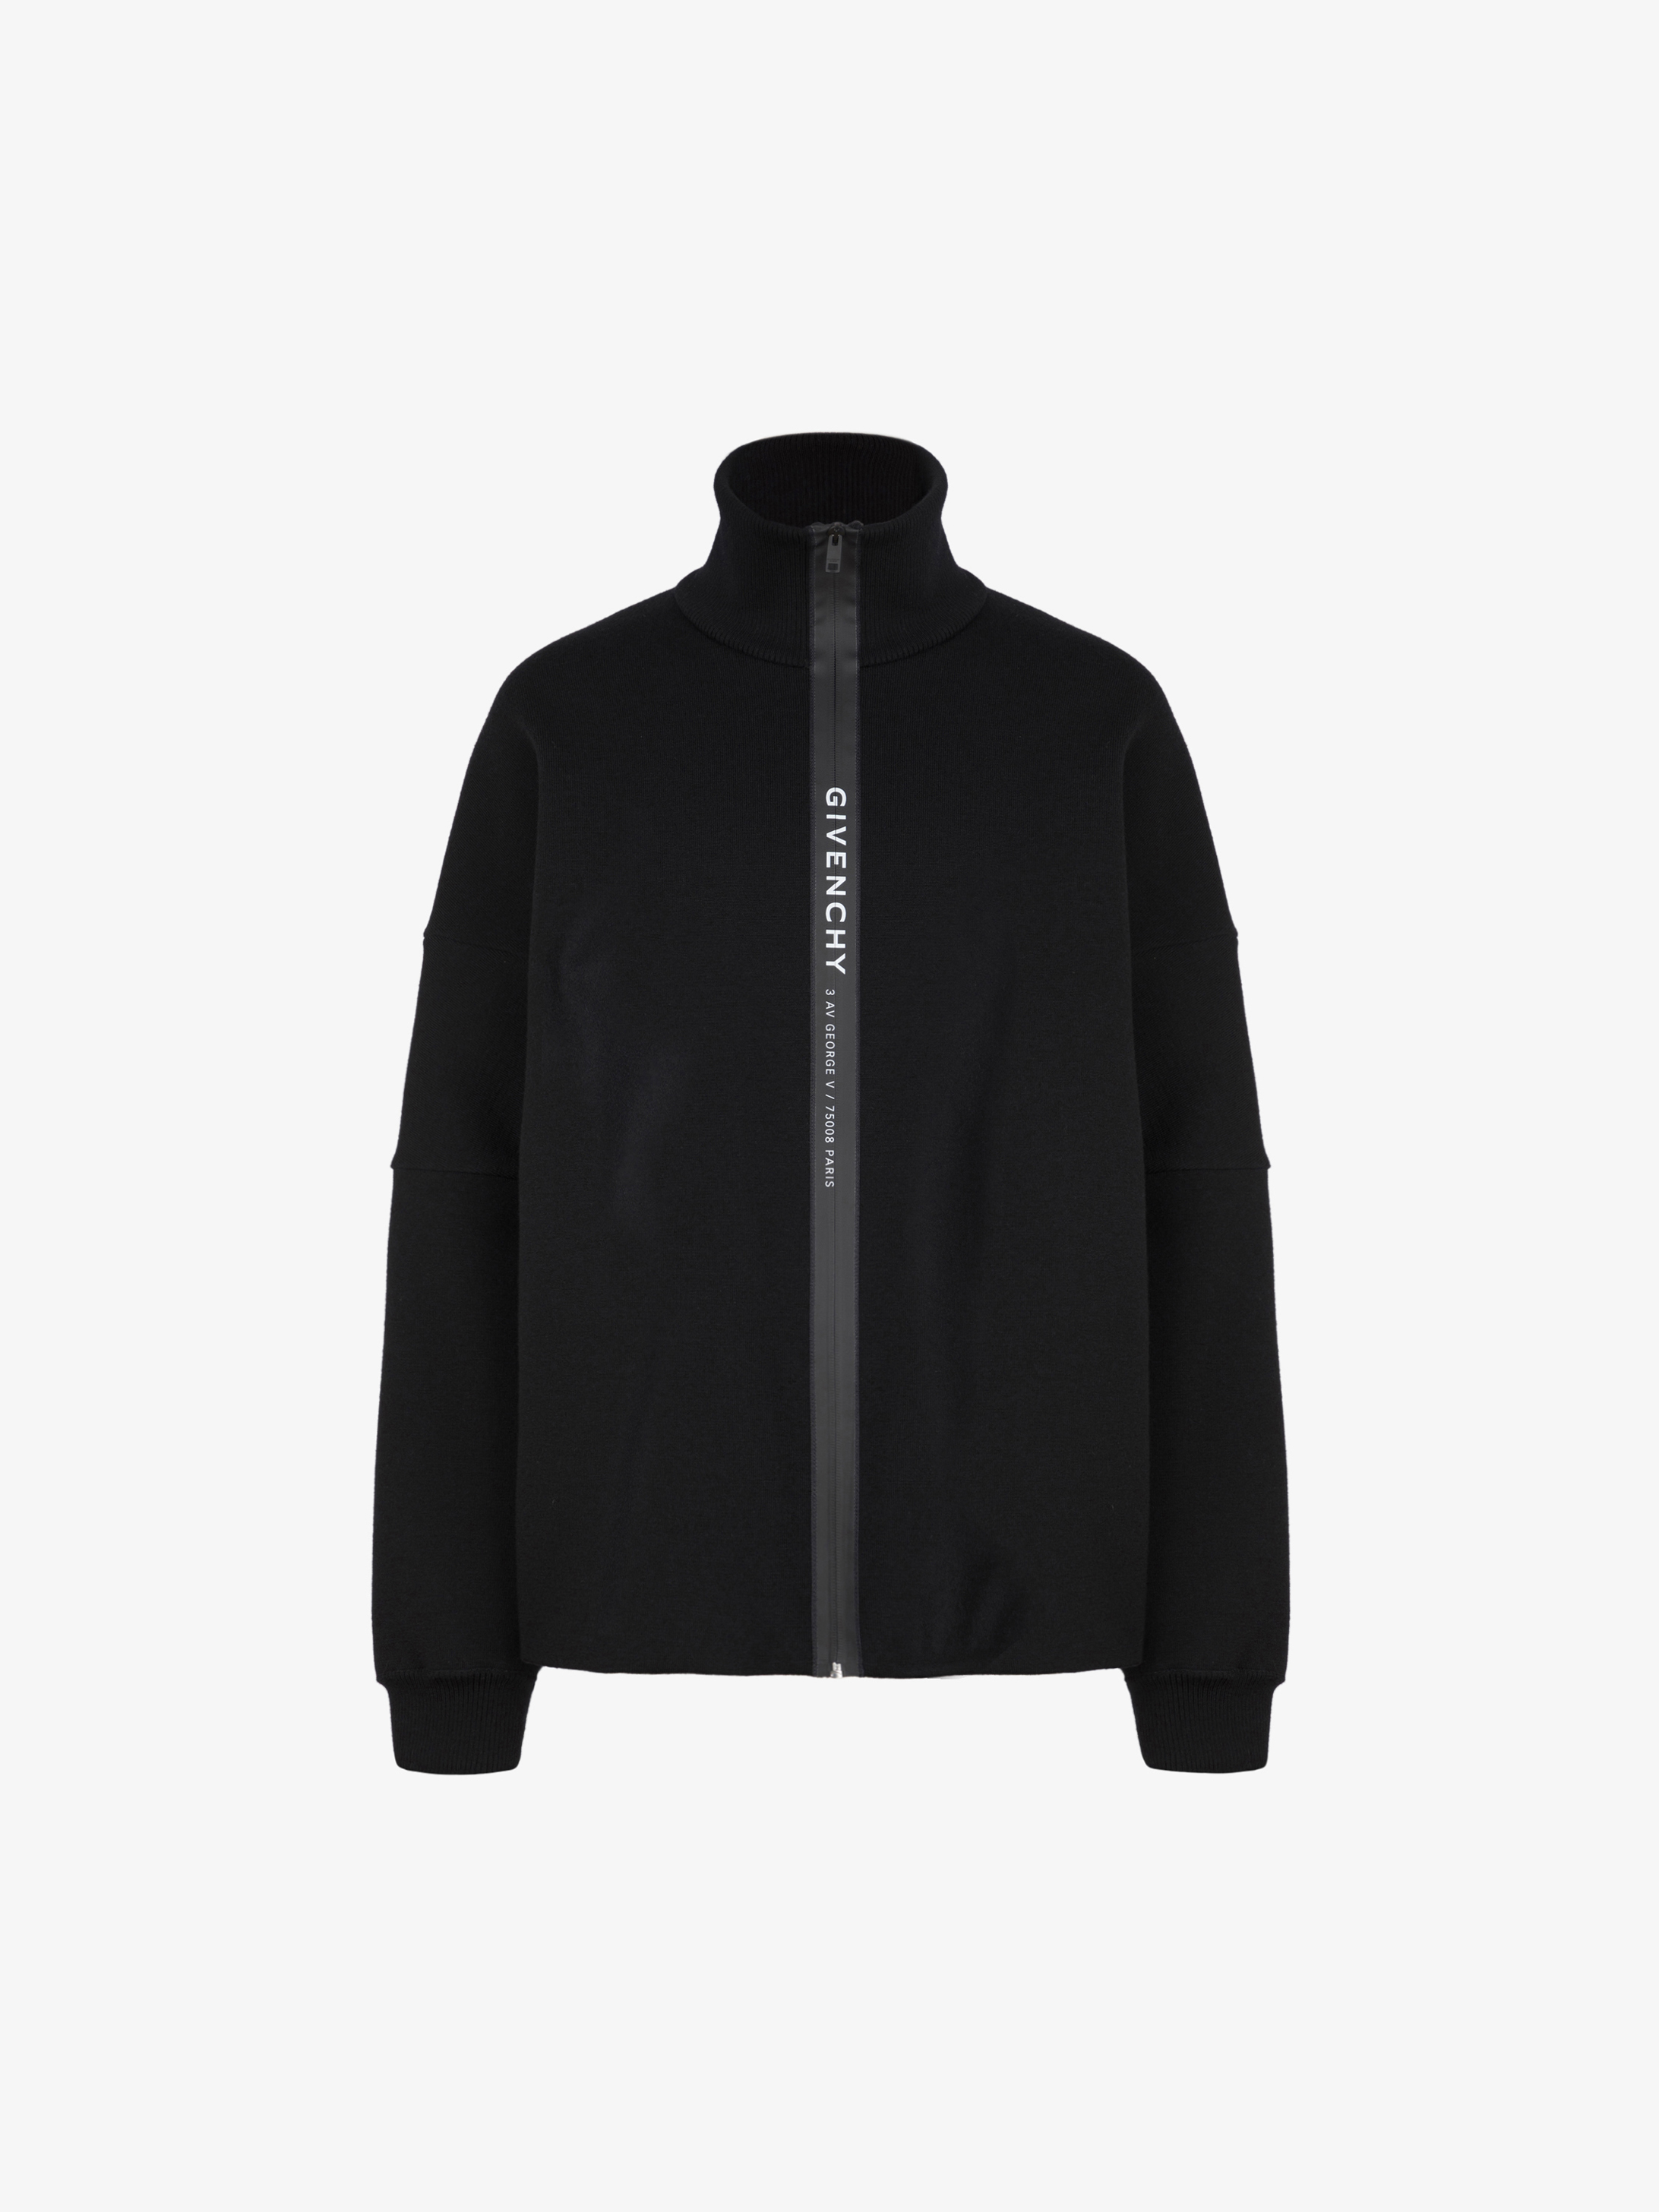 GIVENCHY ADDRESS jacket in wool